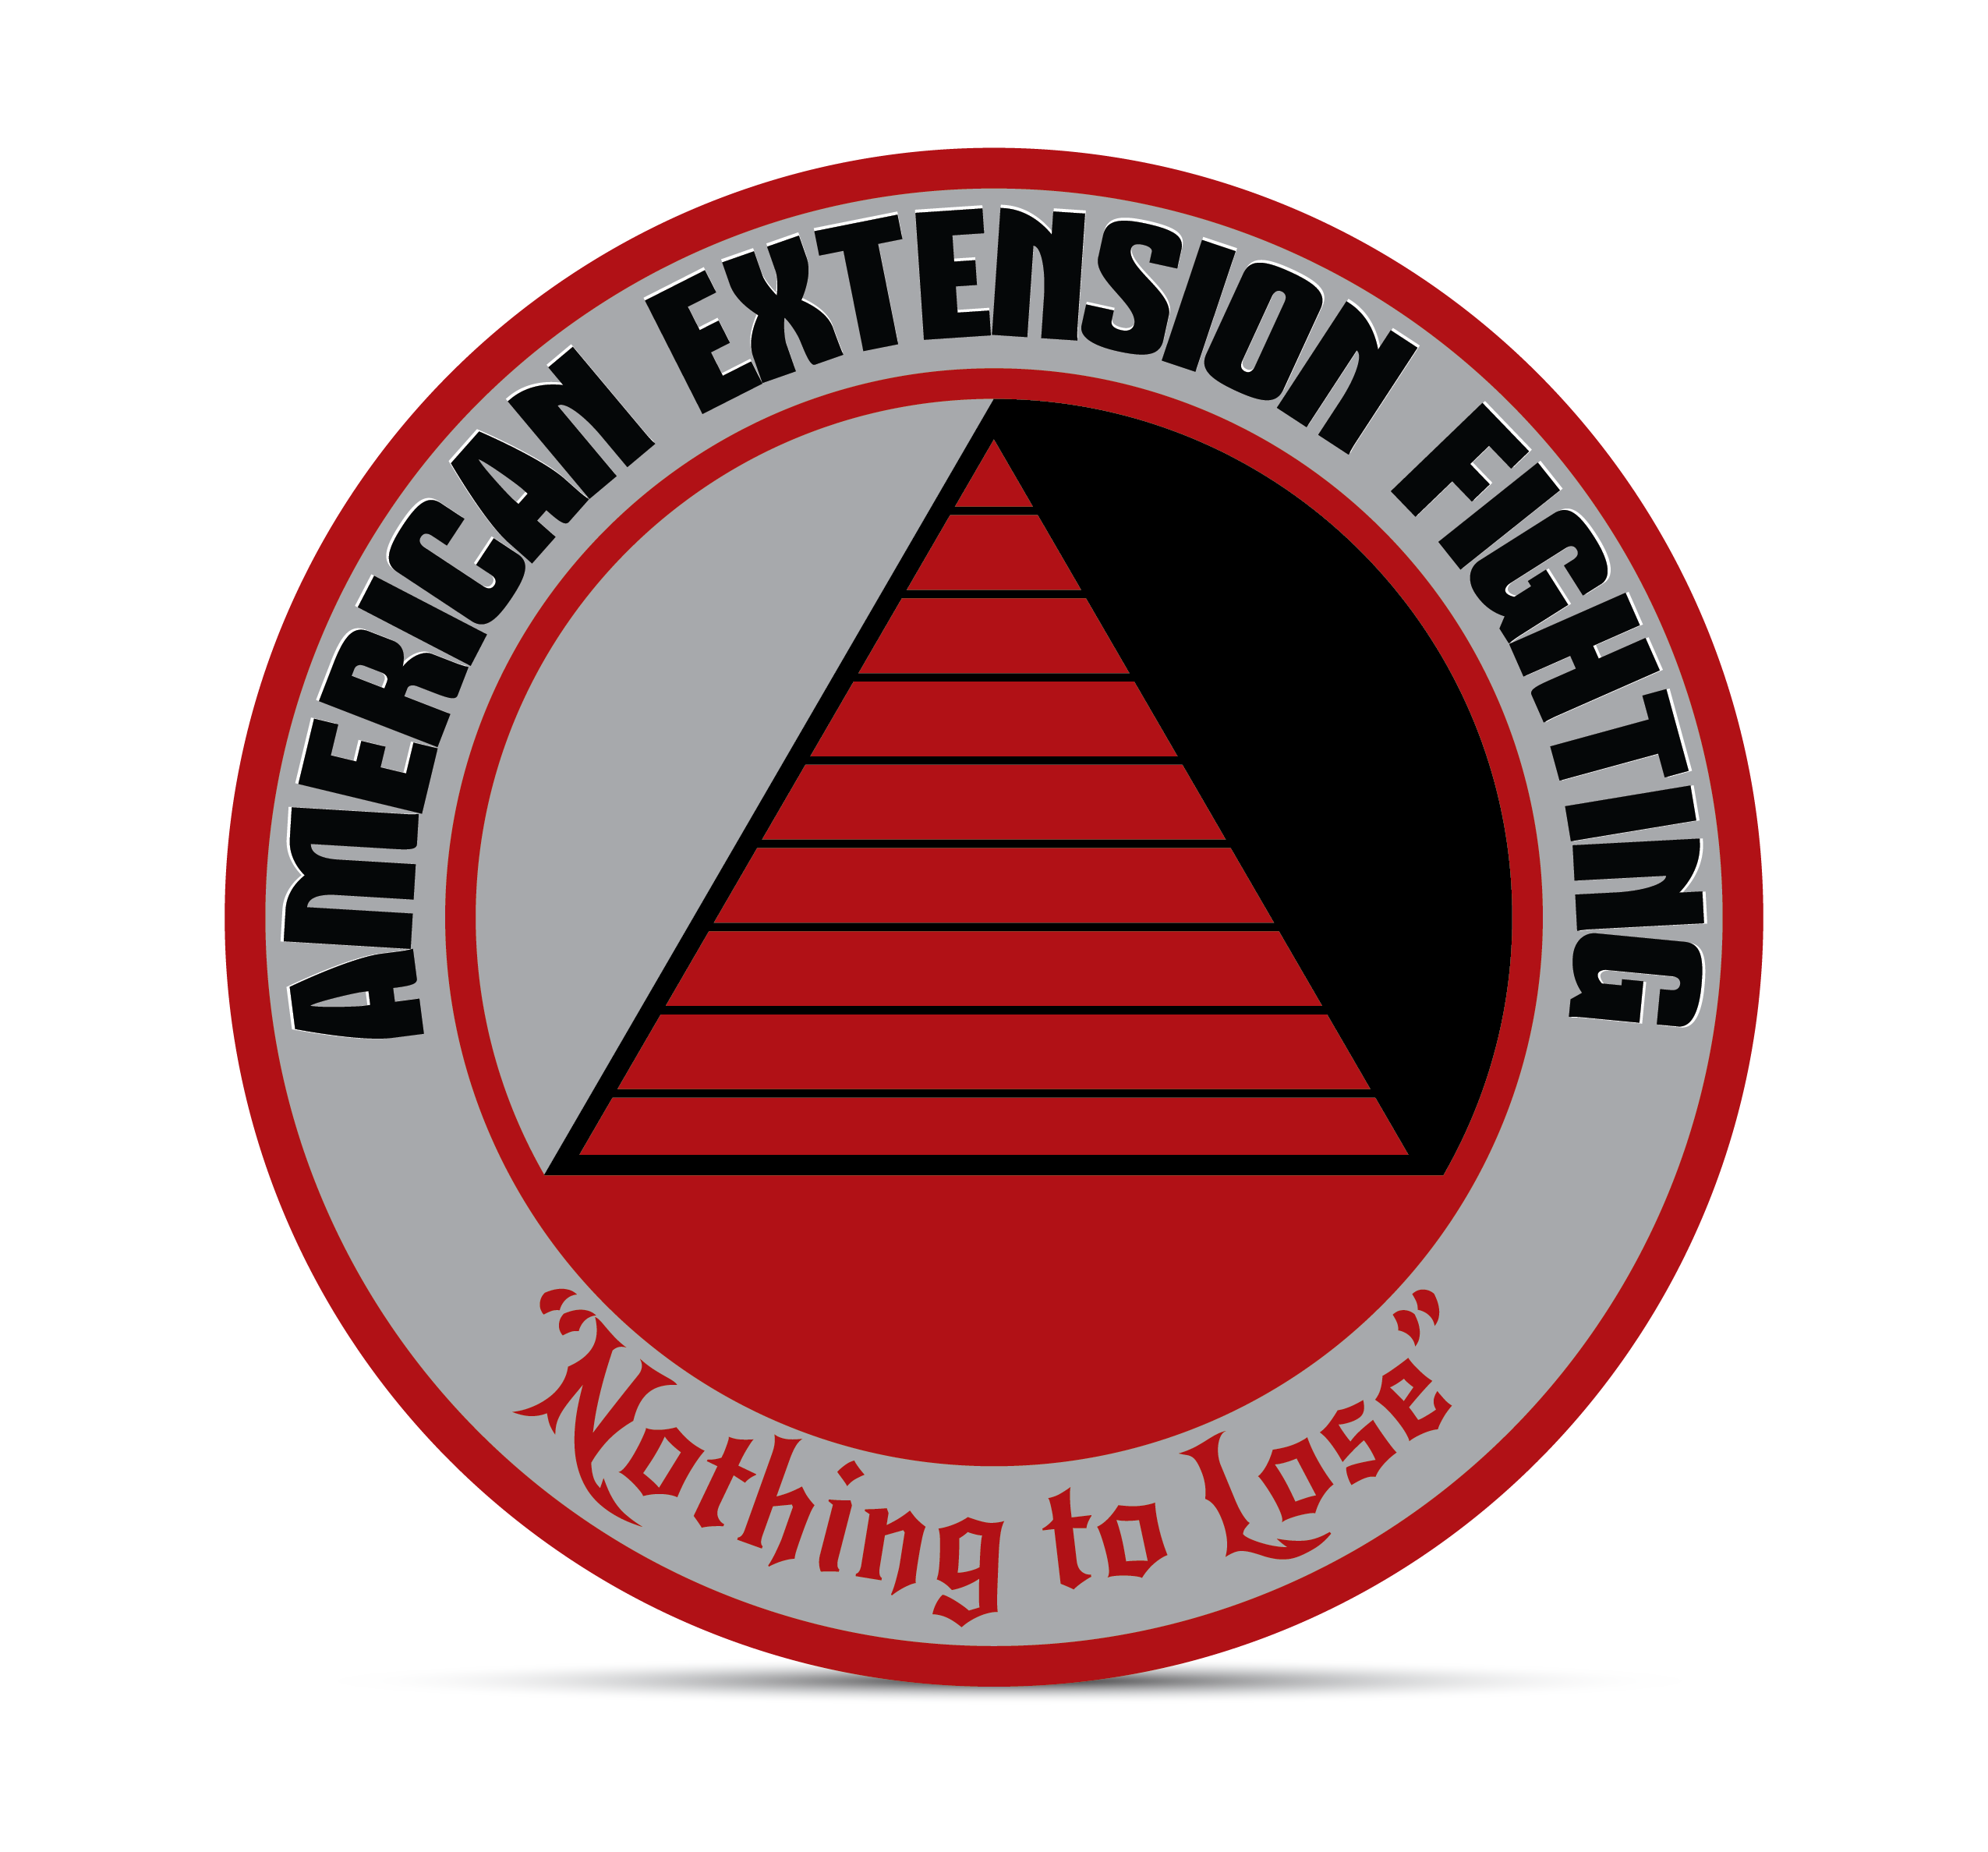 American Extension Fighting - Nothing to Lose